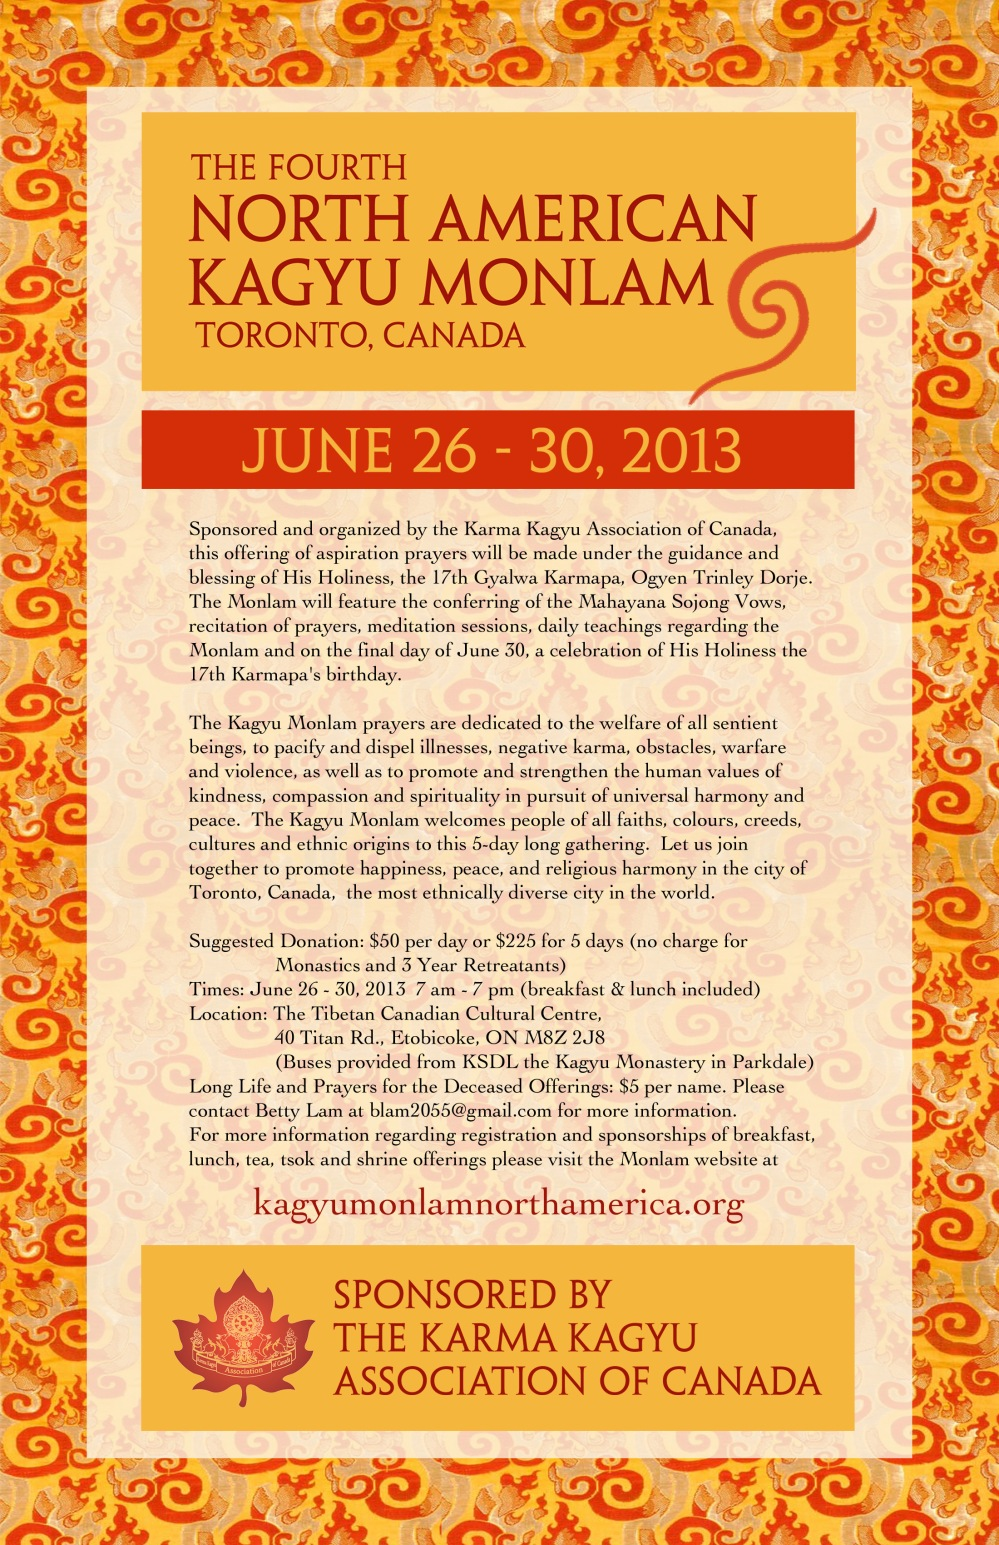 North American Kagyu Monlam June 26-30, 2013